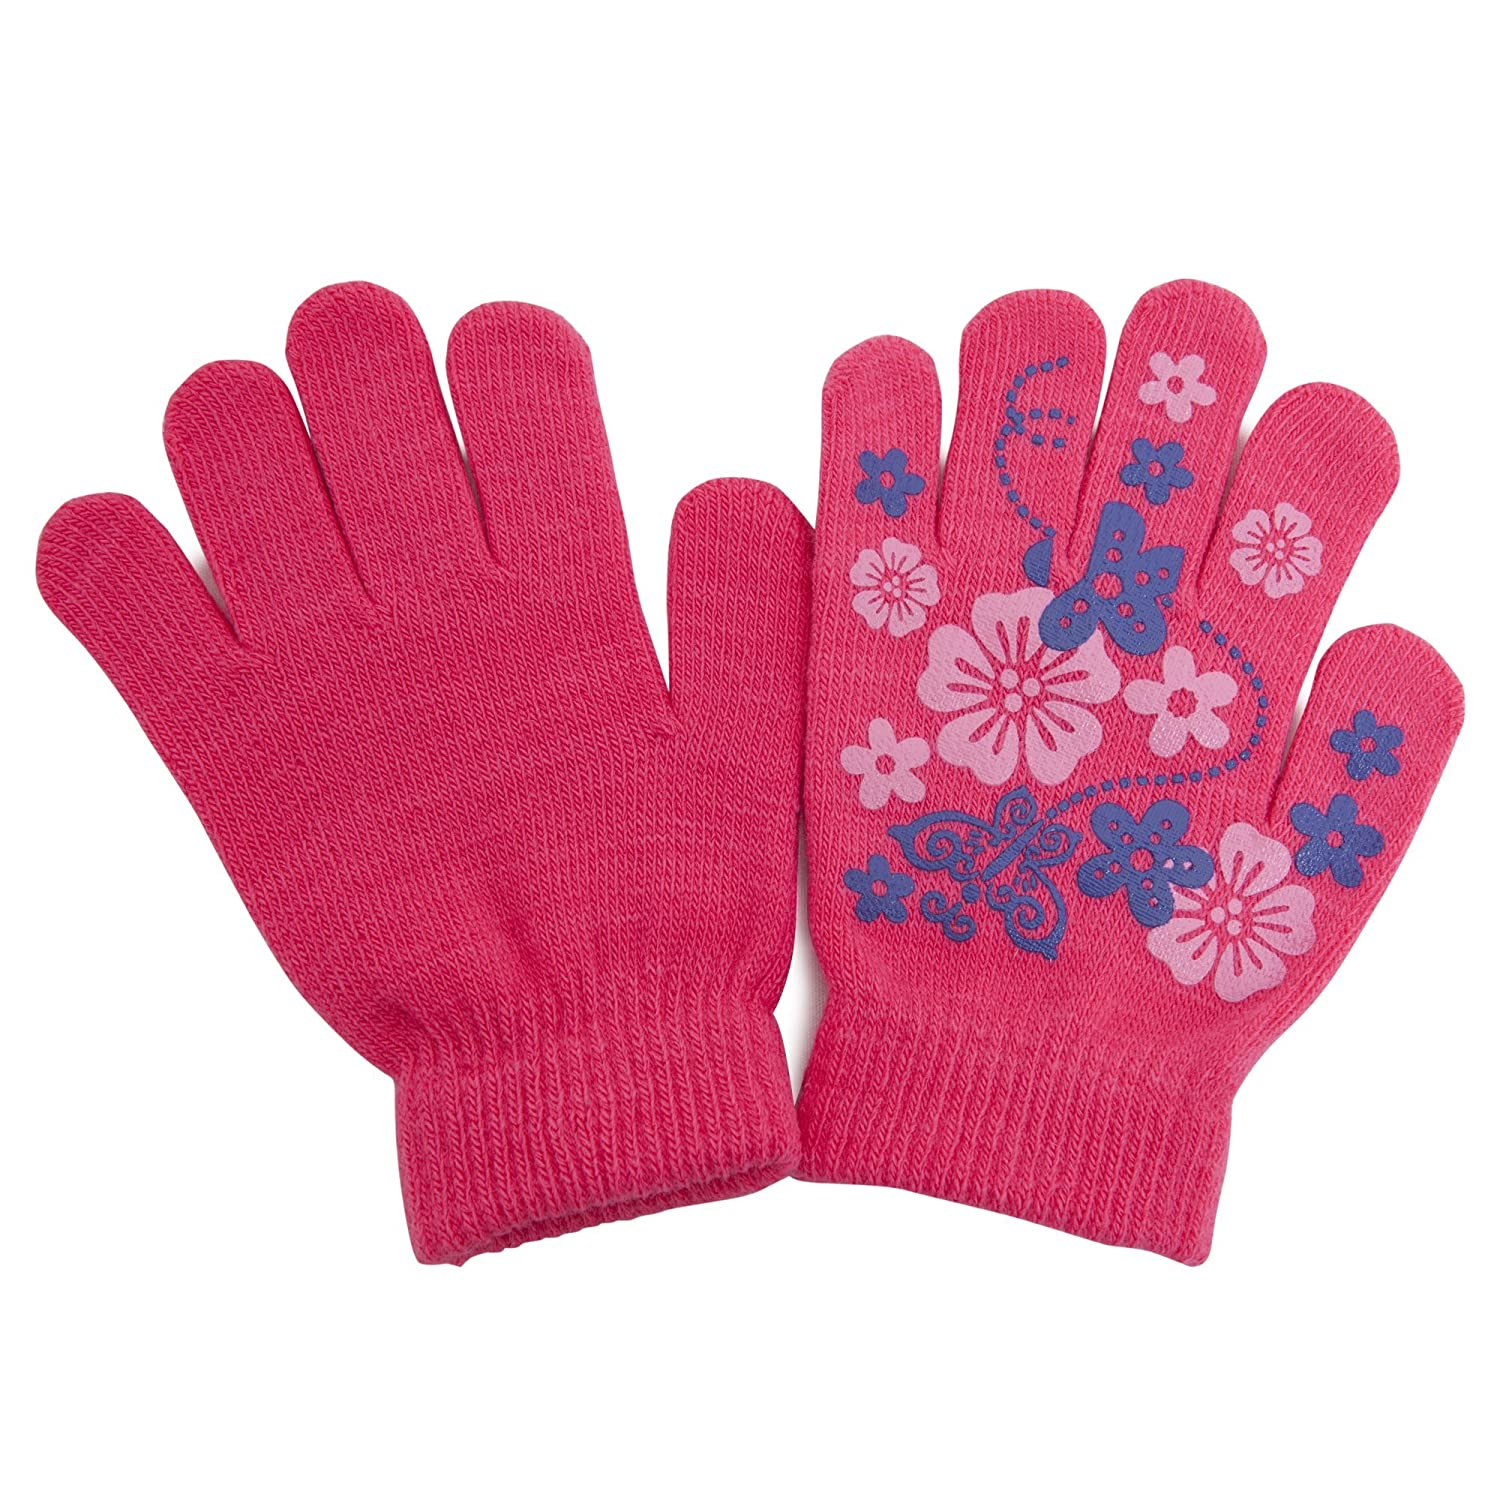 Girls Fun Winter Magic Gloves with Rubber Print (Up to 12 years) (Pink) UTGL473_1